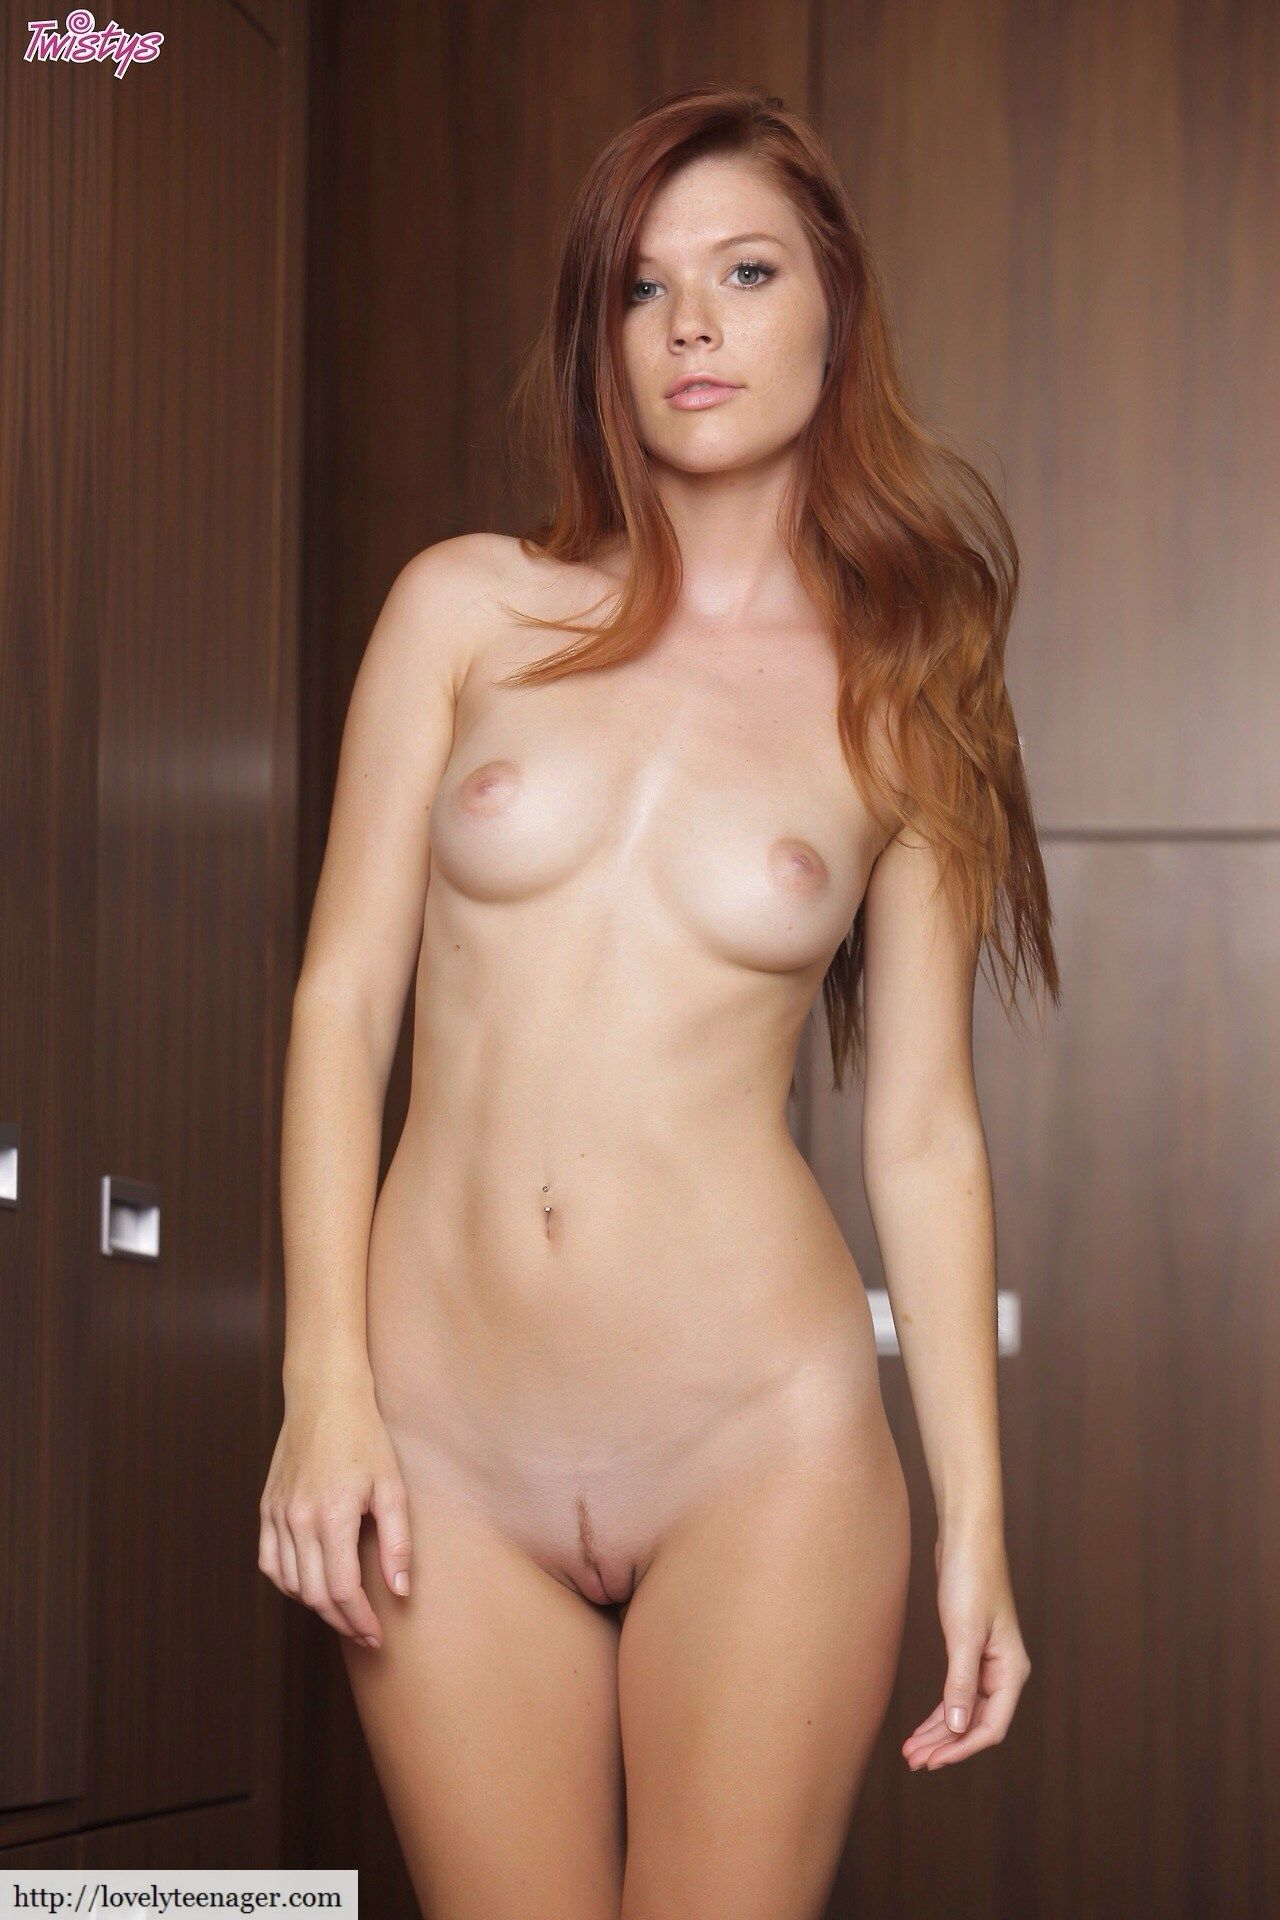 Great bouncing Young redhead bandaged sweet pink cunt